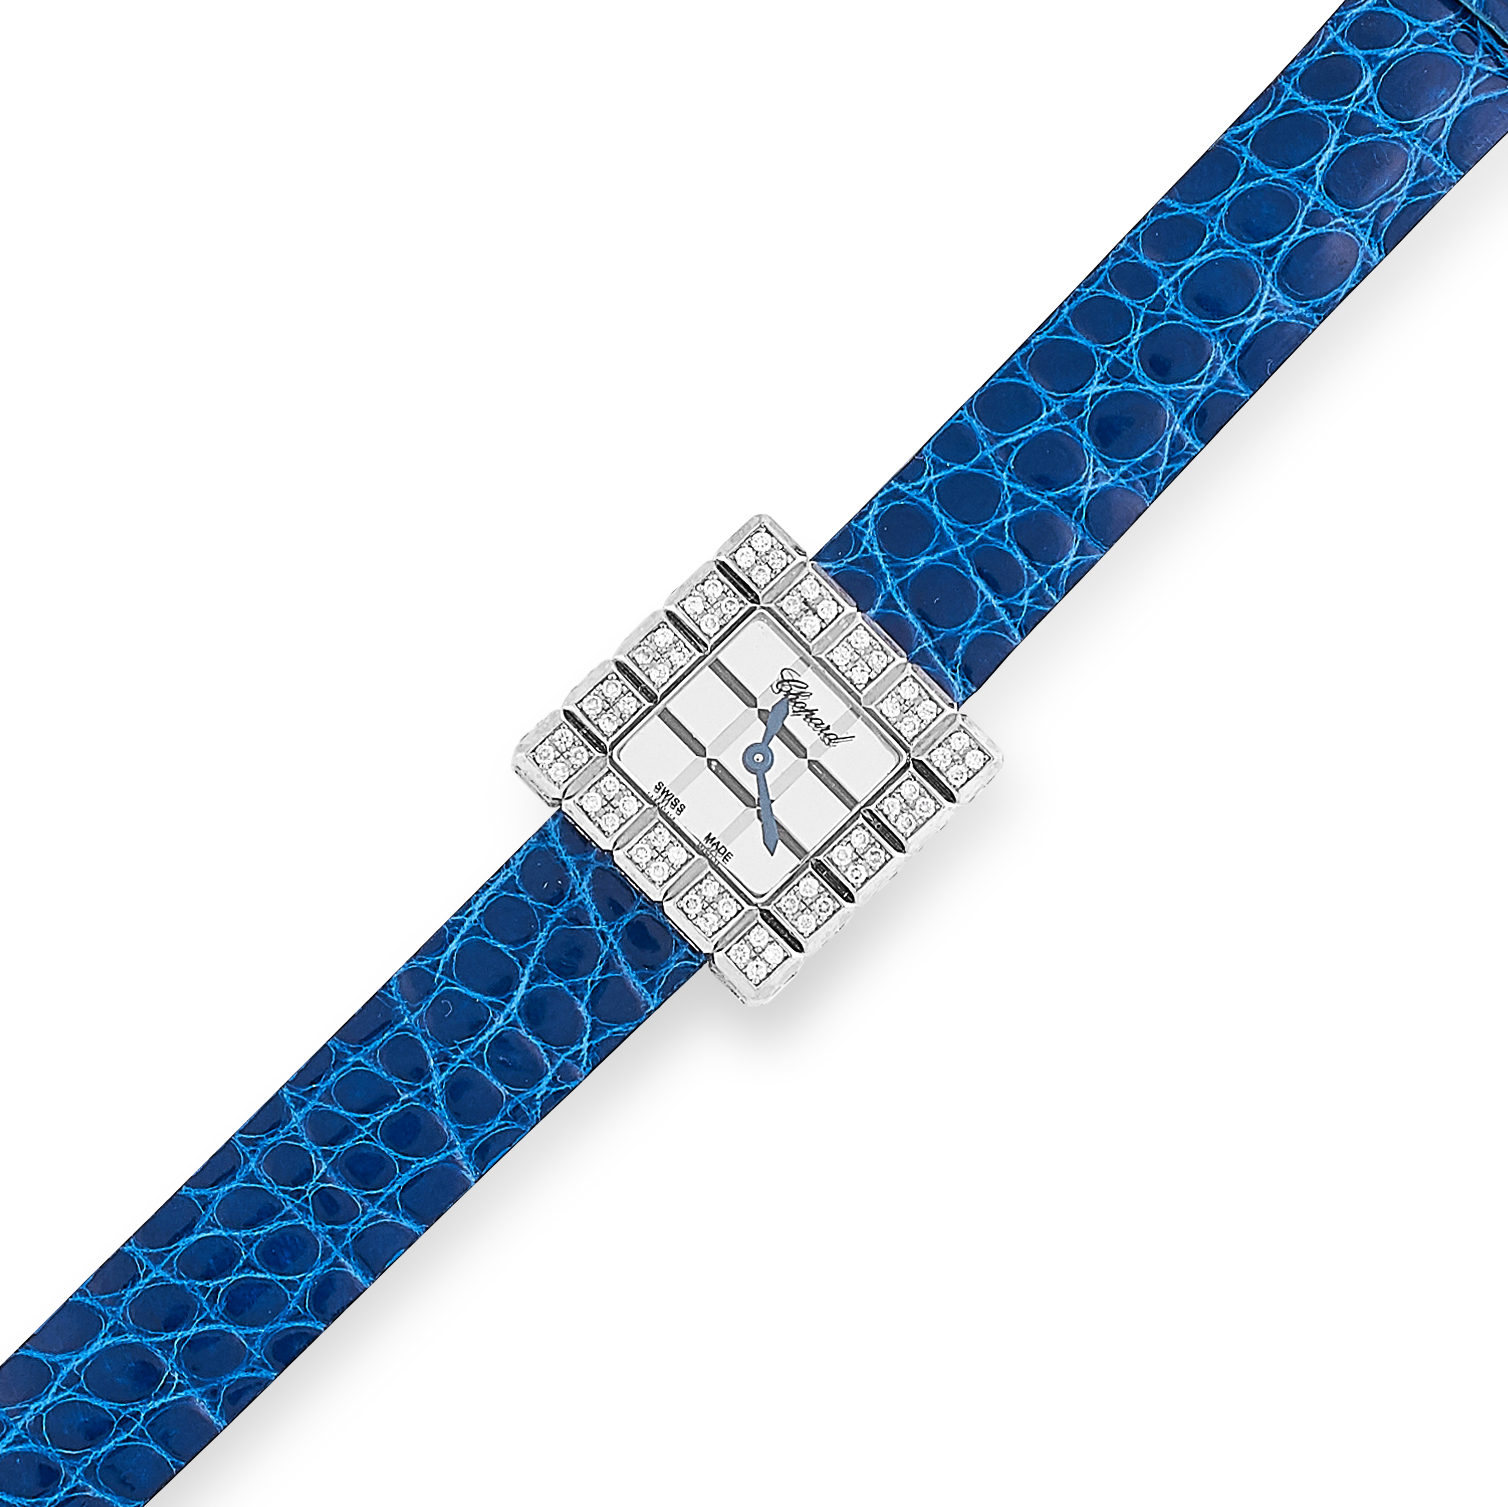 LADIES DIAMOND ICE CUBE WATCH, CHOPARD the bezel set with round cut diamonds and on a blue leather - Image 2 of 2